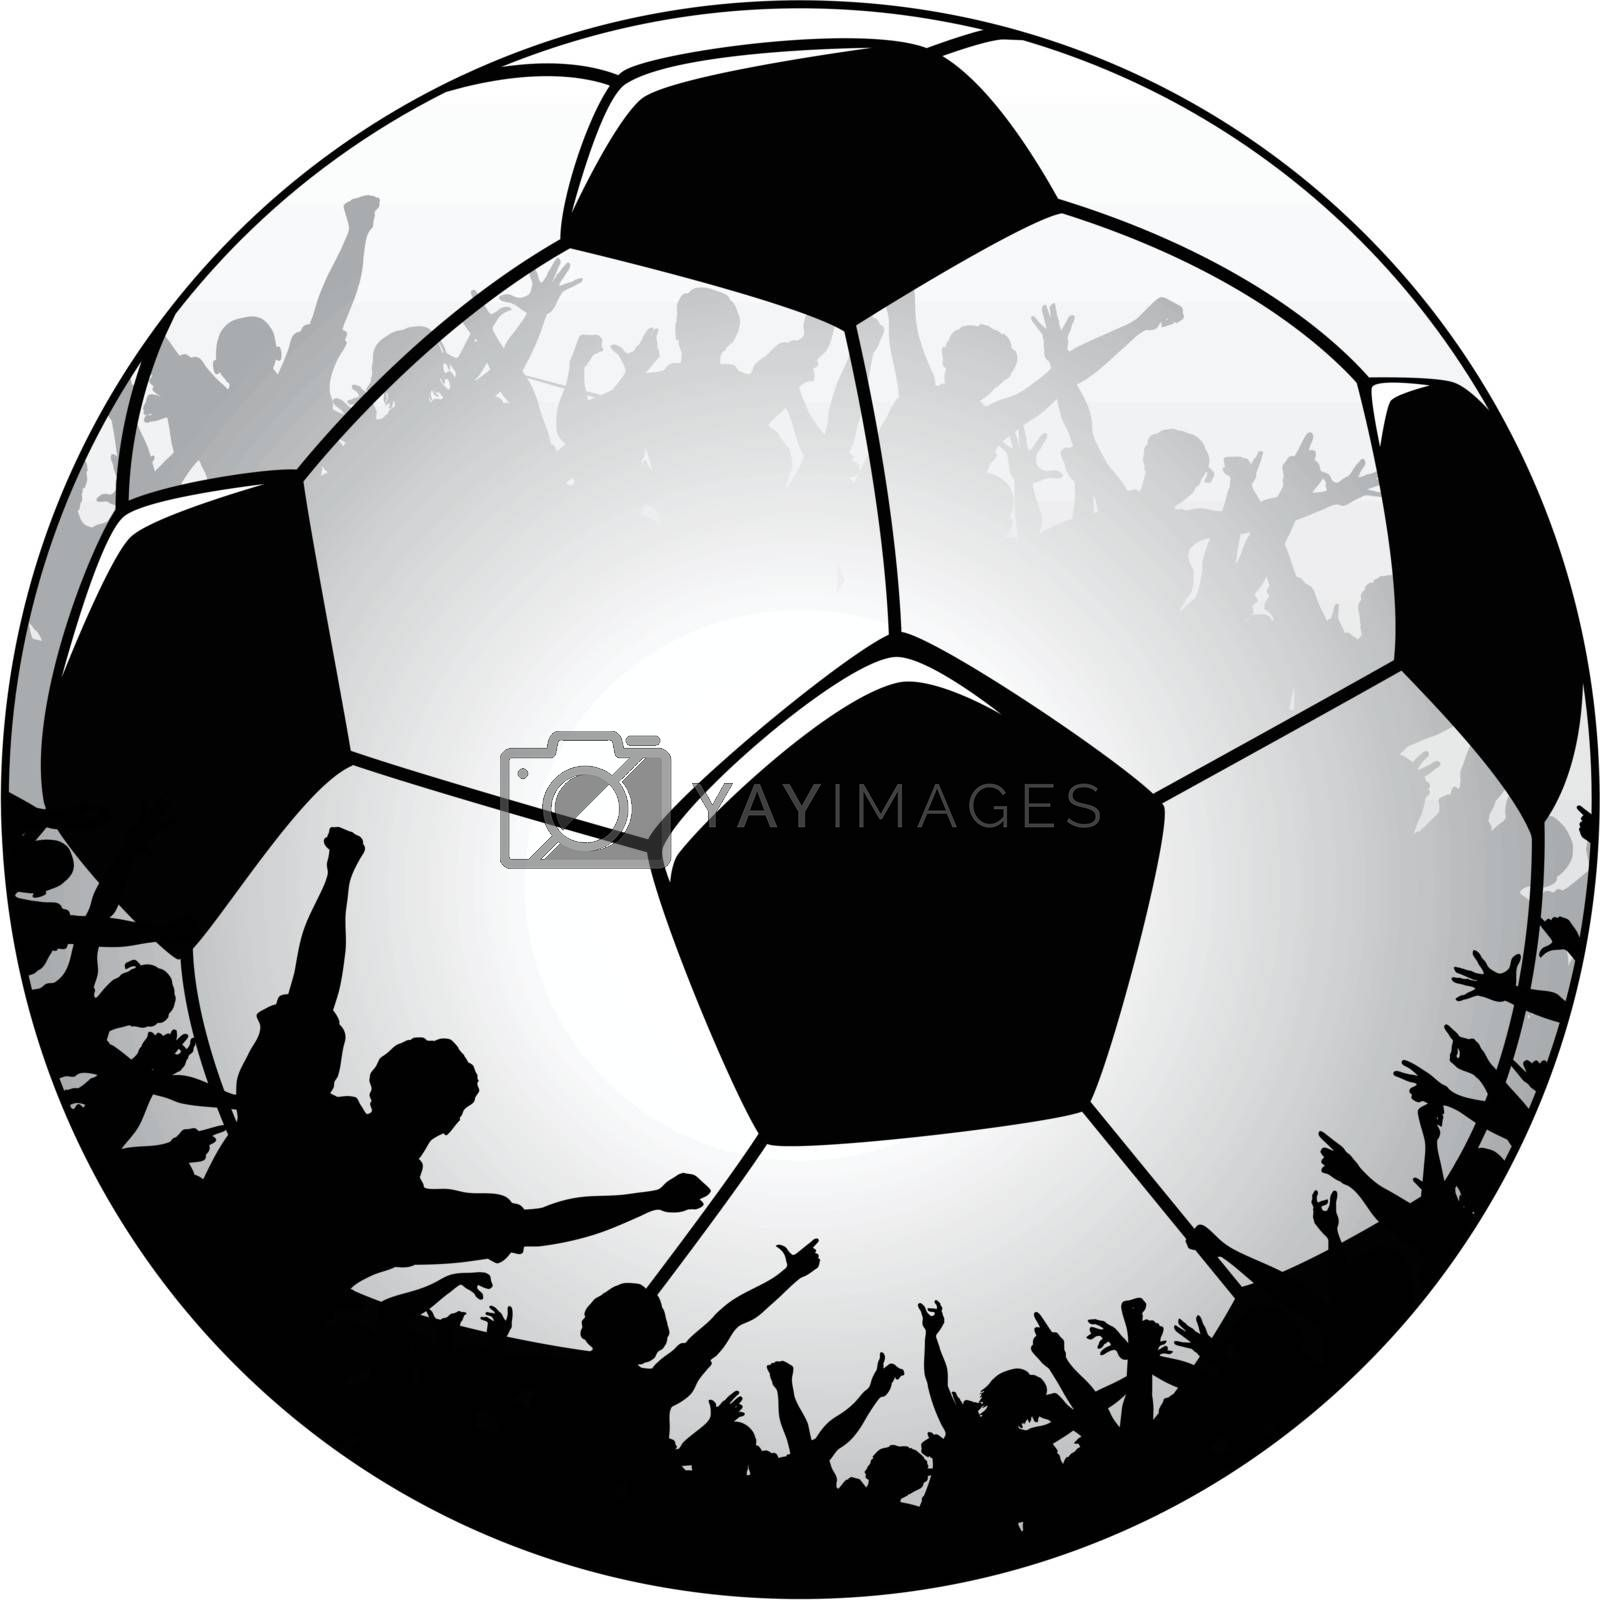 Editable vector illustration of a soccer ball with cheering crowd